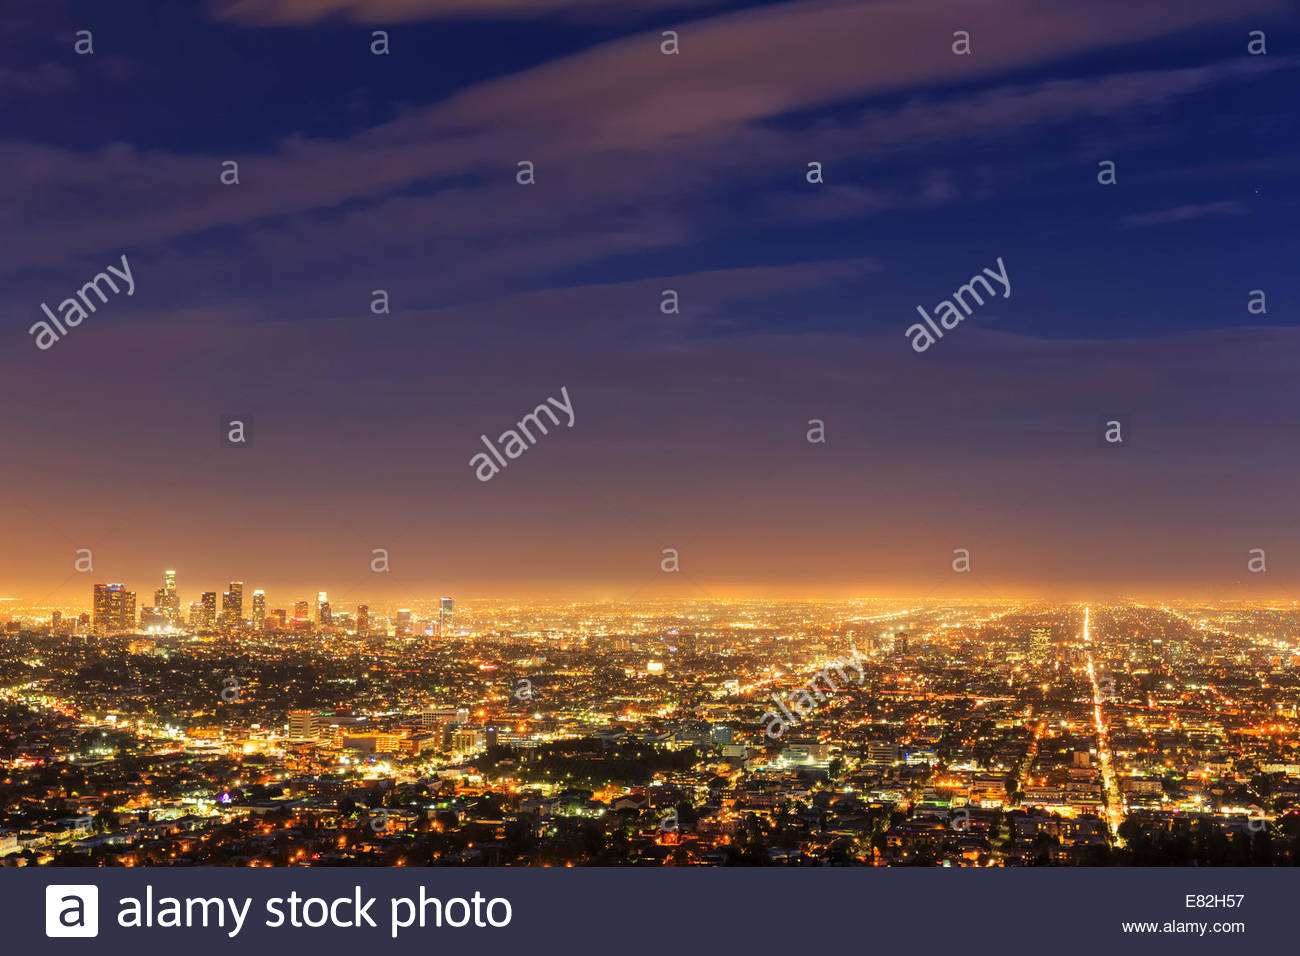 USA, California, Los Angeles, Cityscape, Blue hour - Stock Image